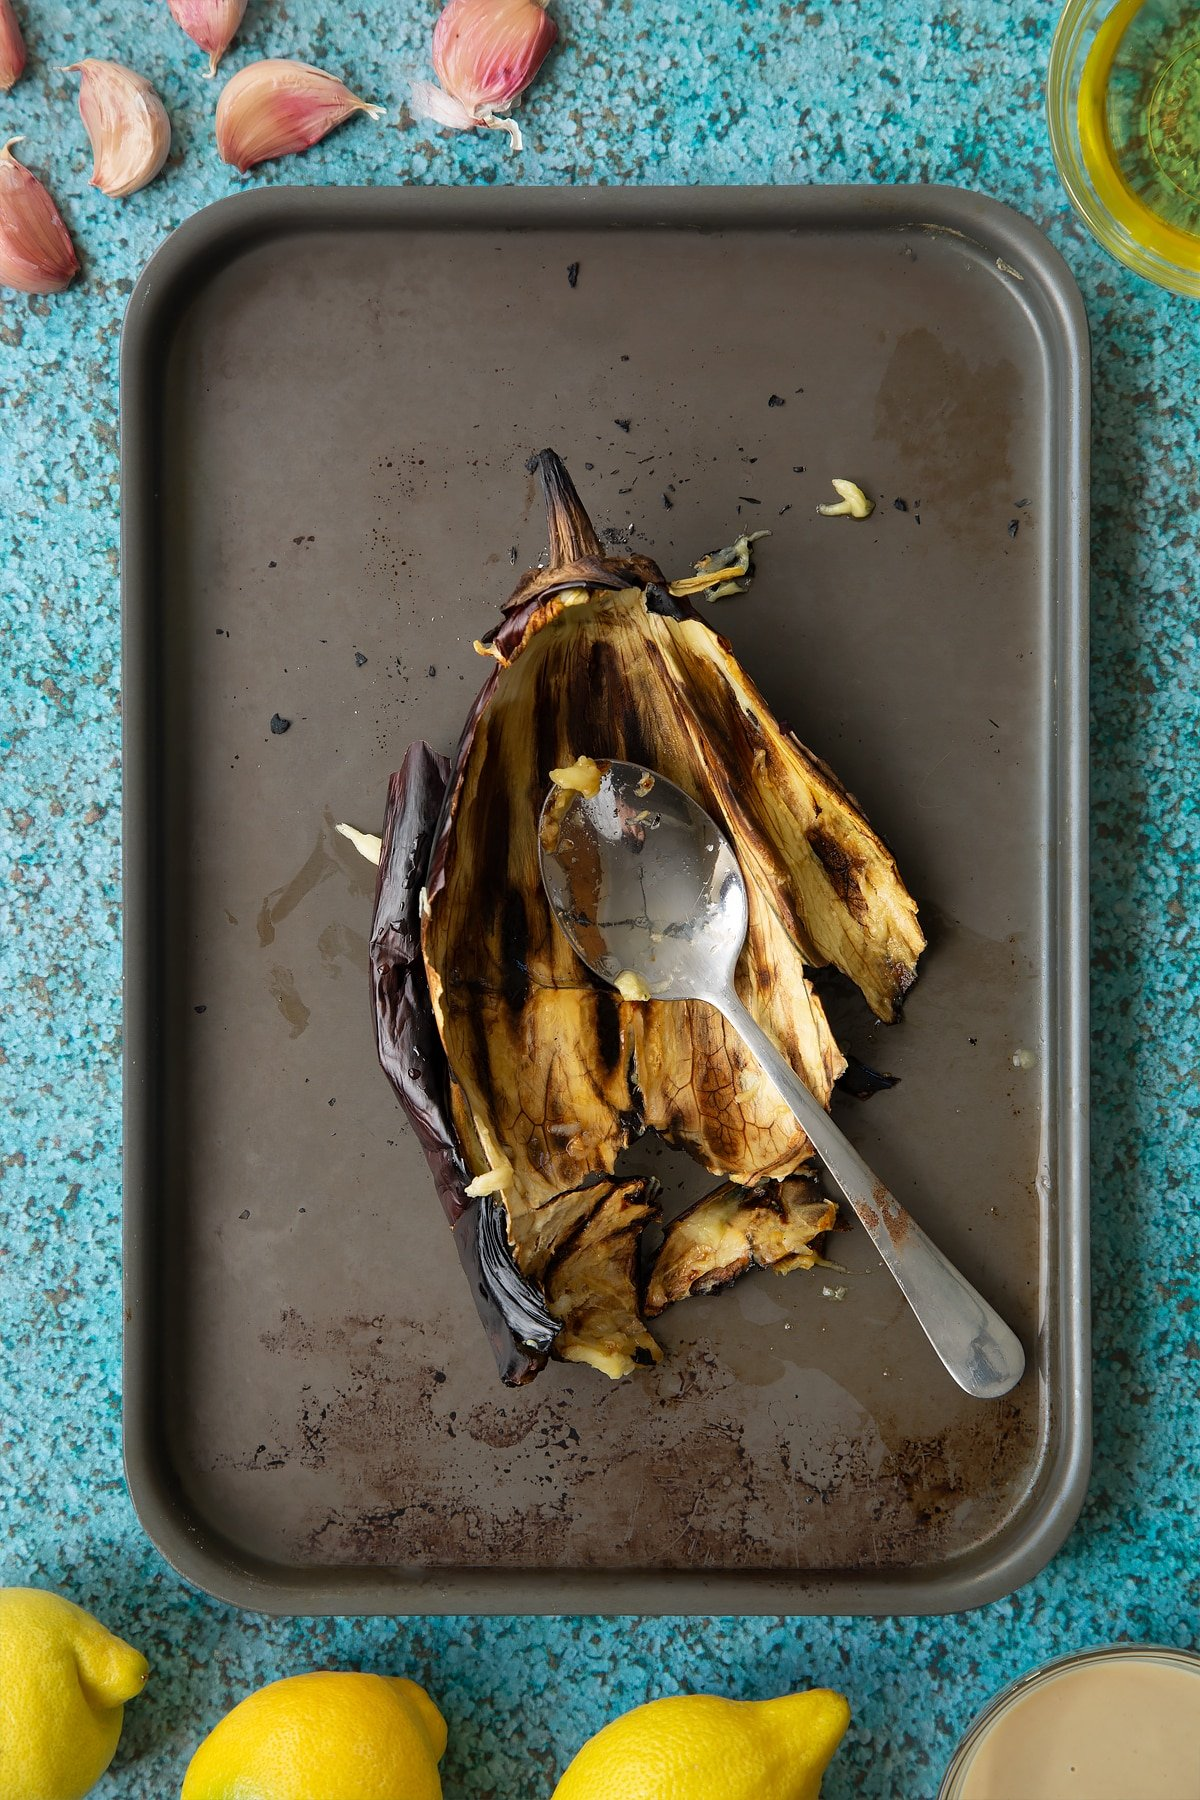 A charred aubergine skin on a baking tray with a spoon. Ingredients to make an easy baba ganoush recipe surround the tray.